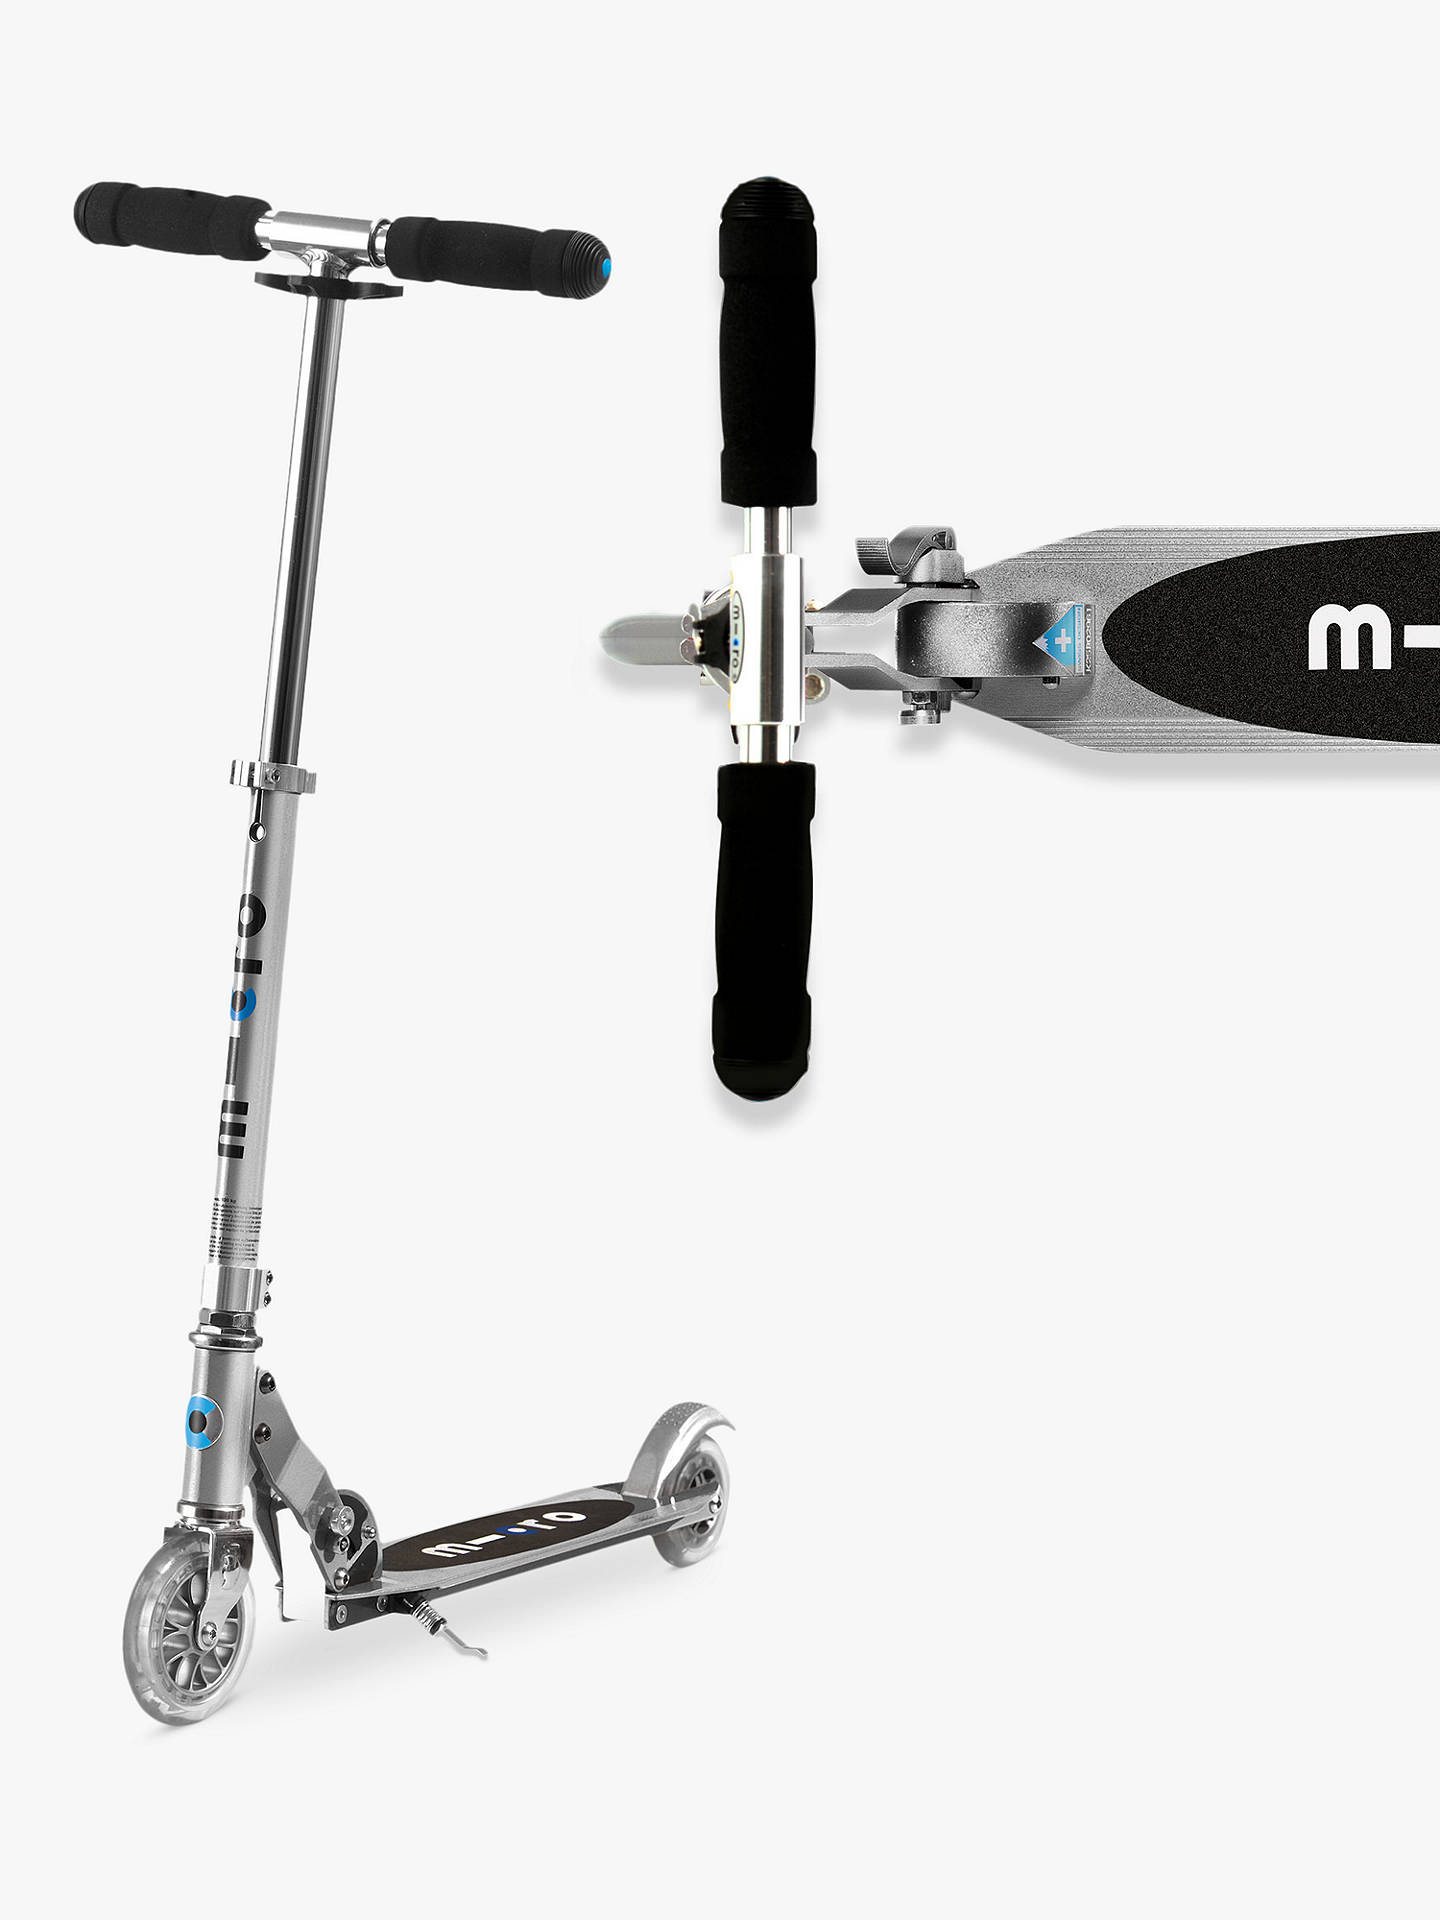 BuyMicro Sprite Scooter, 5-12 years, Silver Online at johnlewis.com